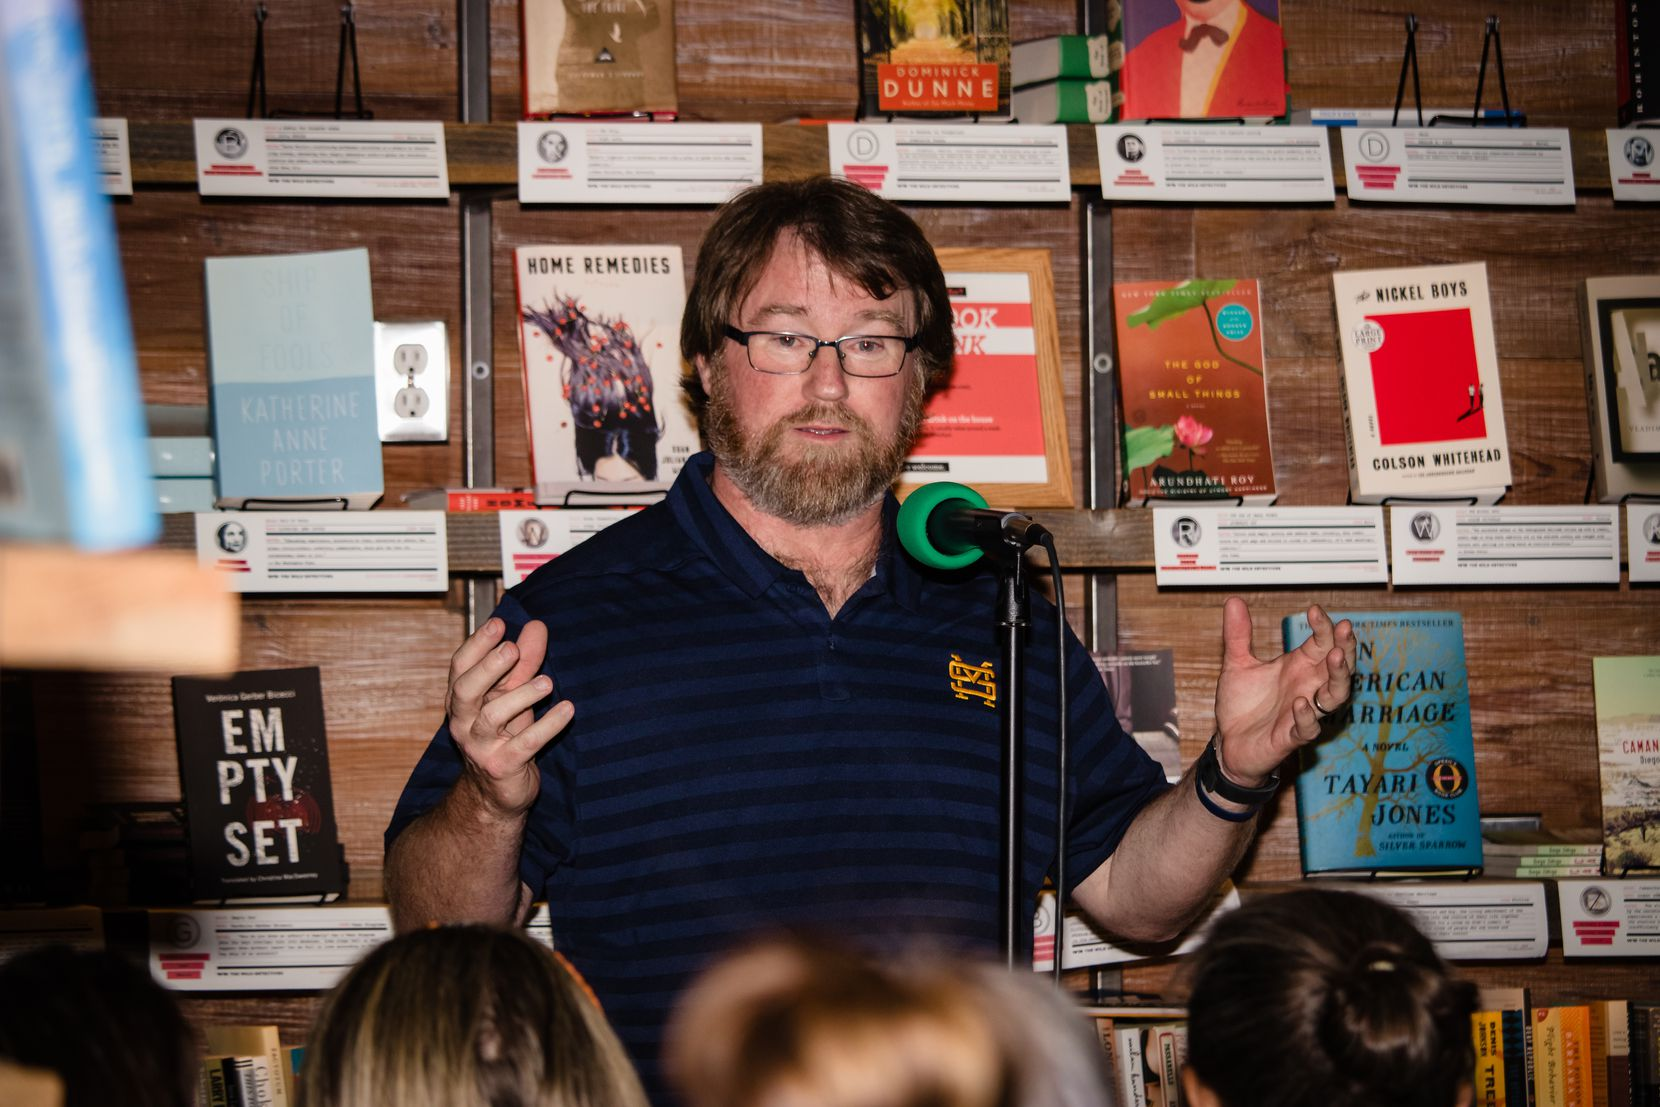 John Mead, a biology teacher at St. Mark's School of Texas, recounts his work teaching evolution and studying fossils at The Story Collider.